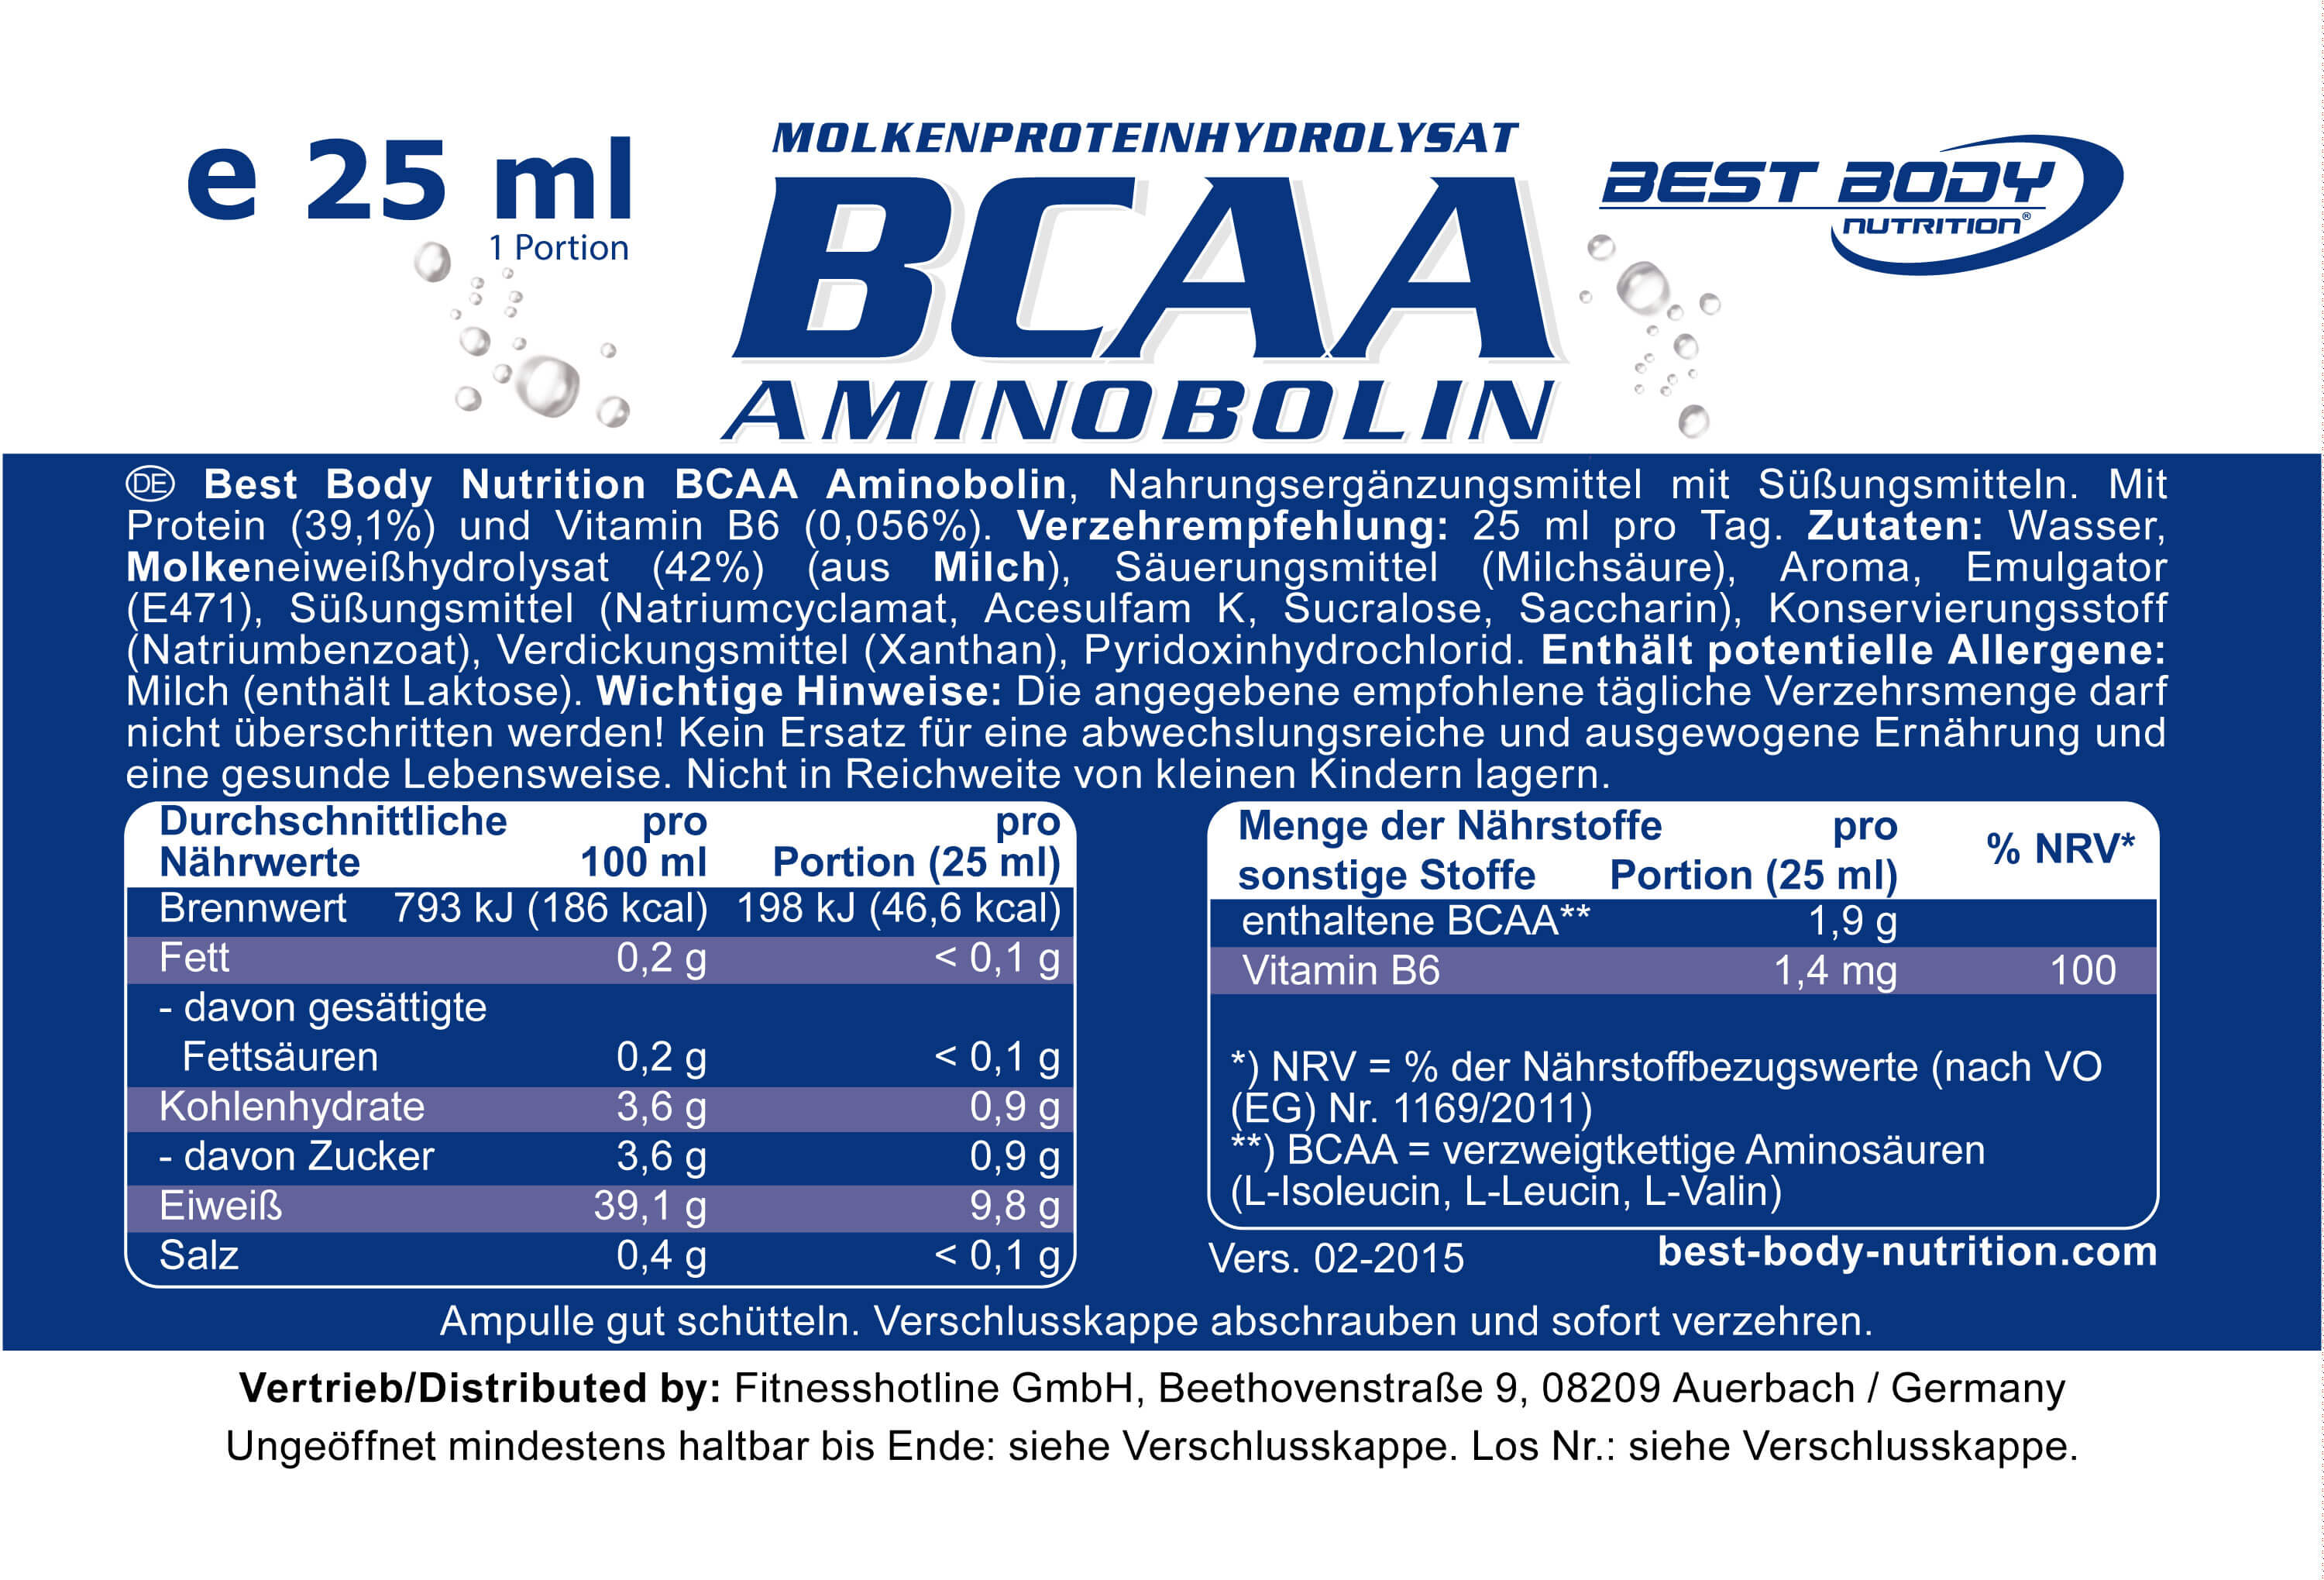 Best Body Nutrition BCAA Aminobolin Etikett